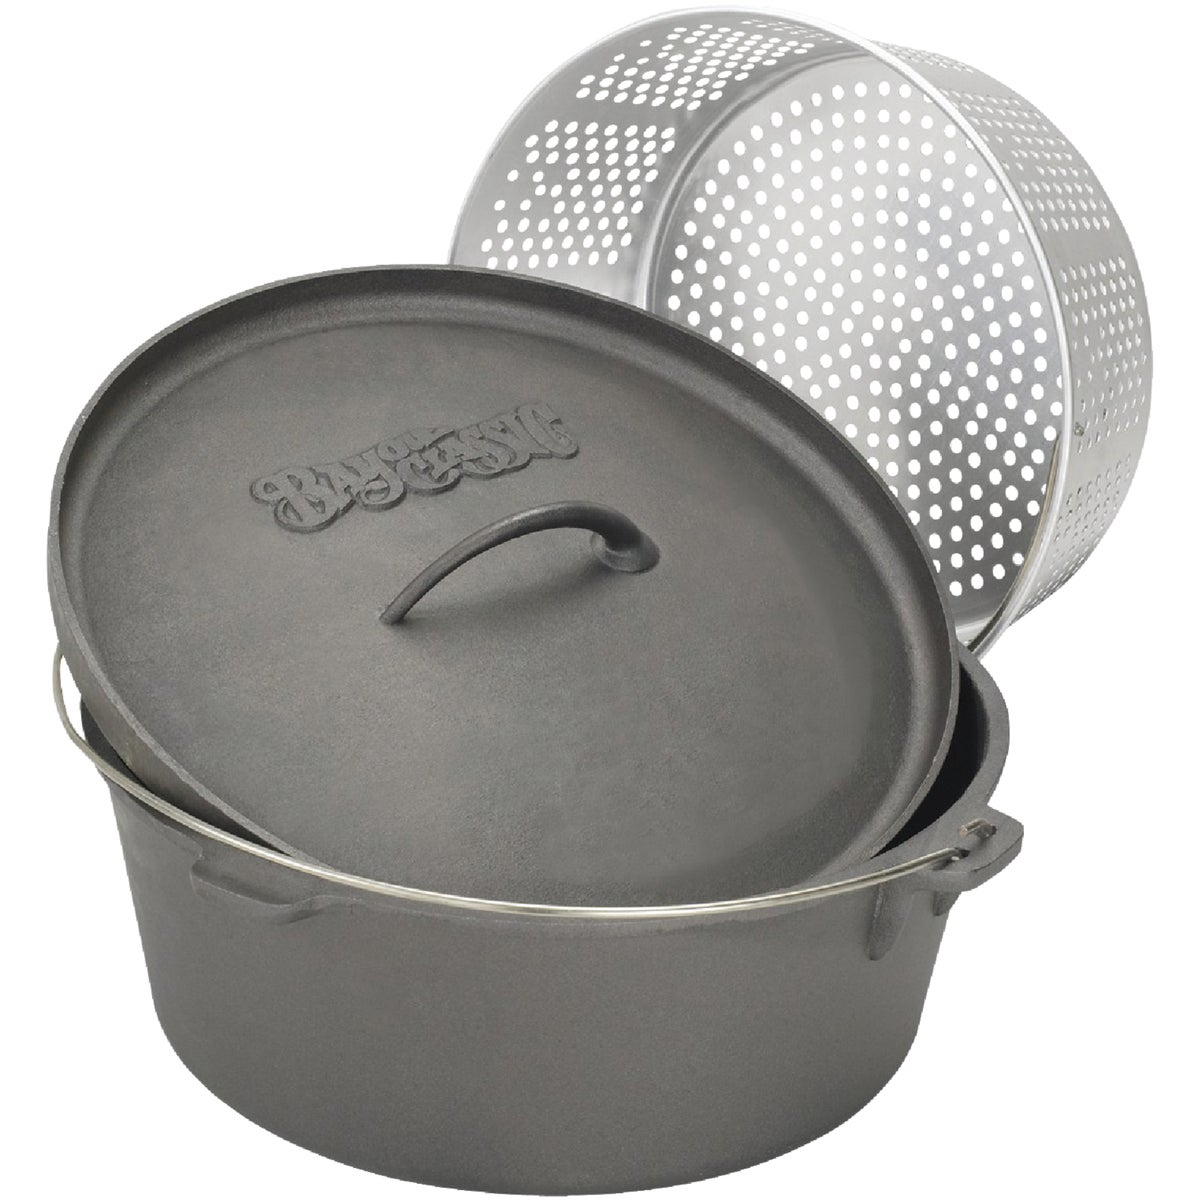 8.5QT CST IRN DUTCH OVEN - 7460 by Barbour Intl